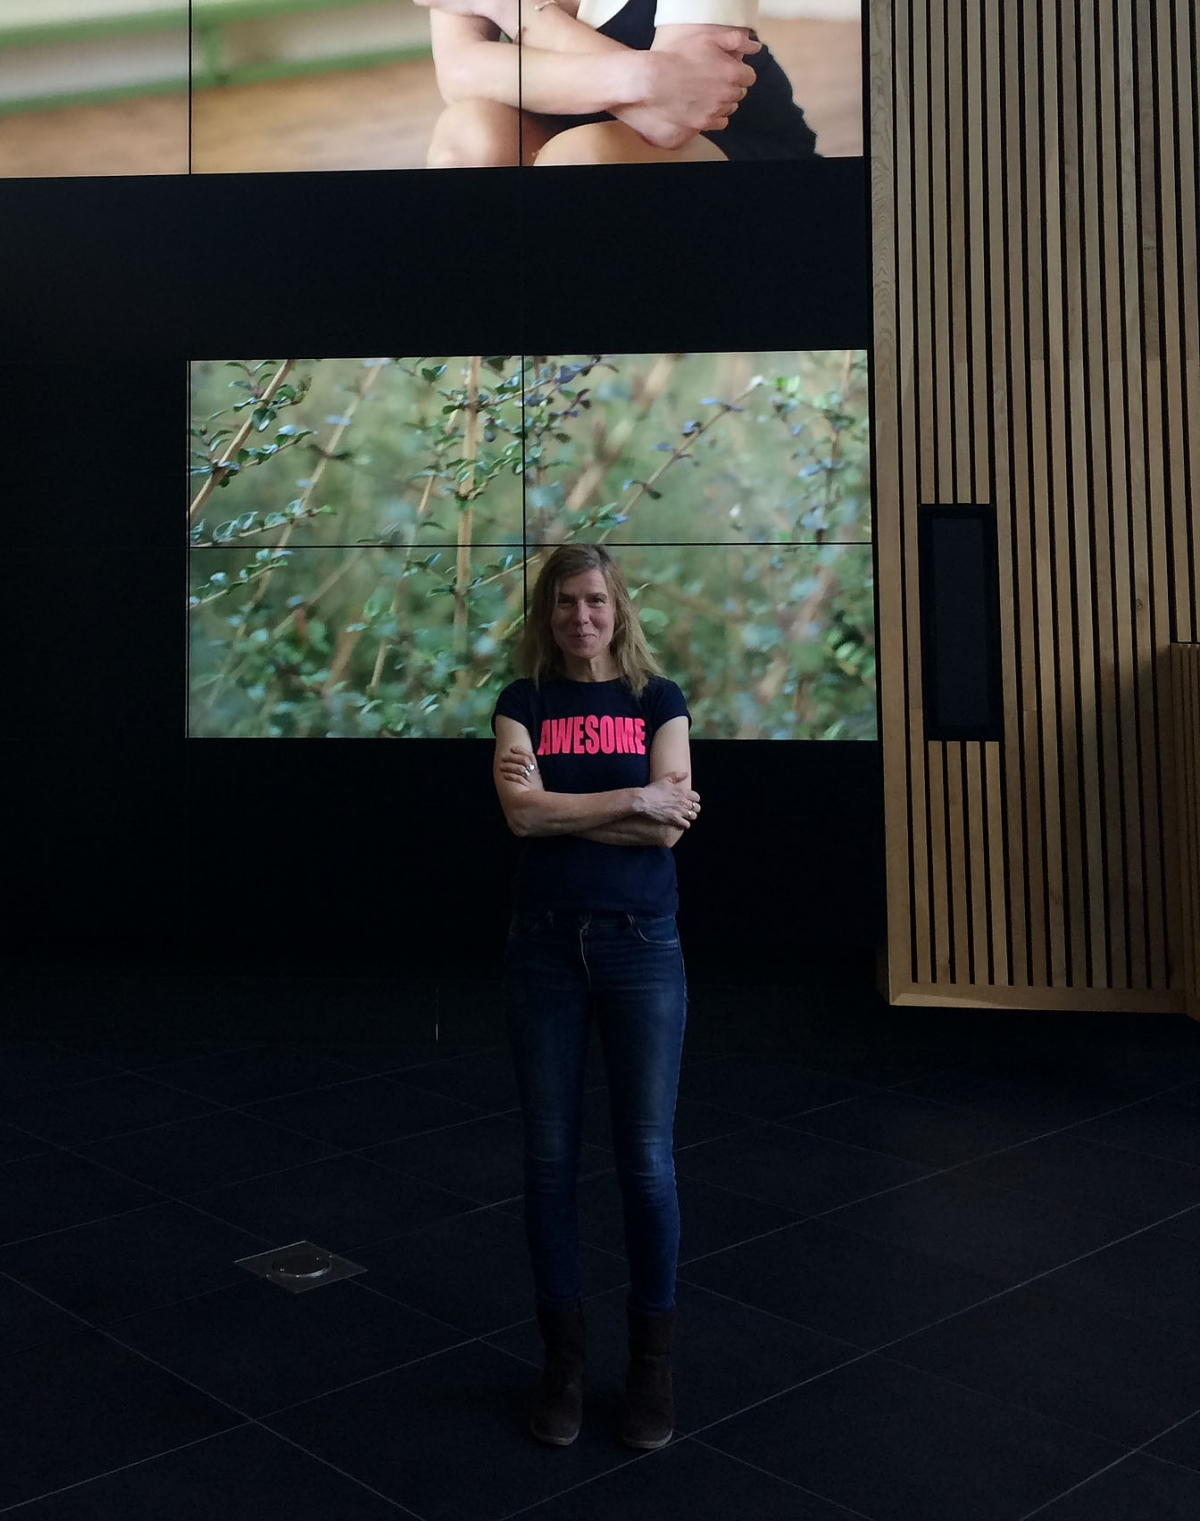 Katrina McPherson standing in front of her work on the MediaWall at Bath Spa University.